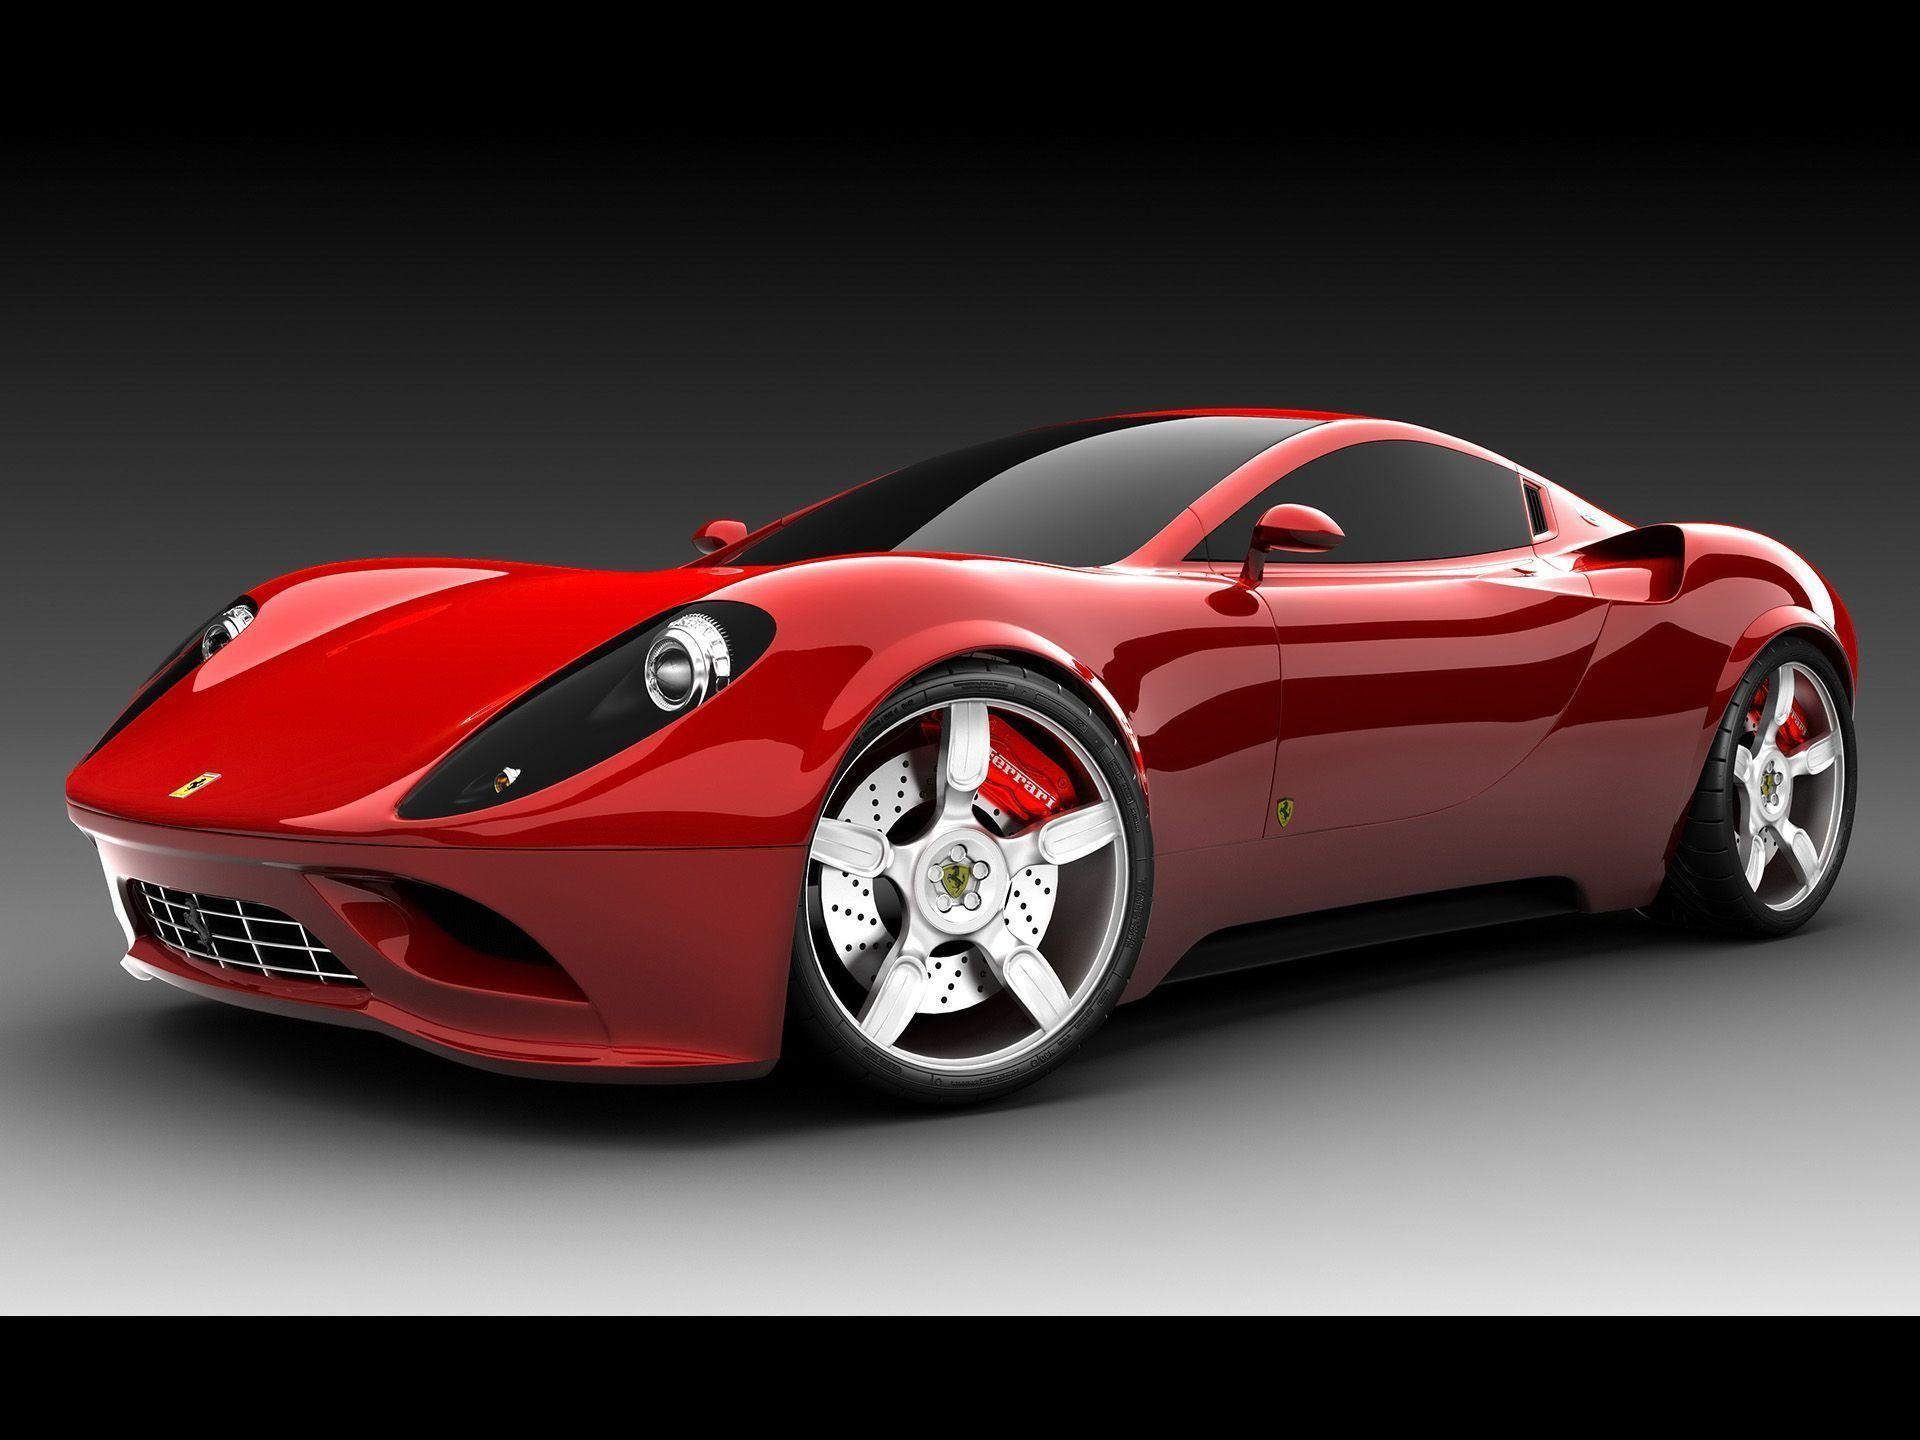 Ferrari Hd Backgrounds Wallpapers 20 HD Wallpapers